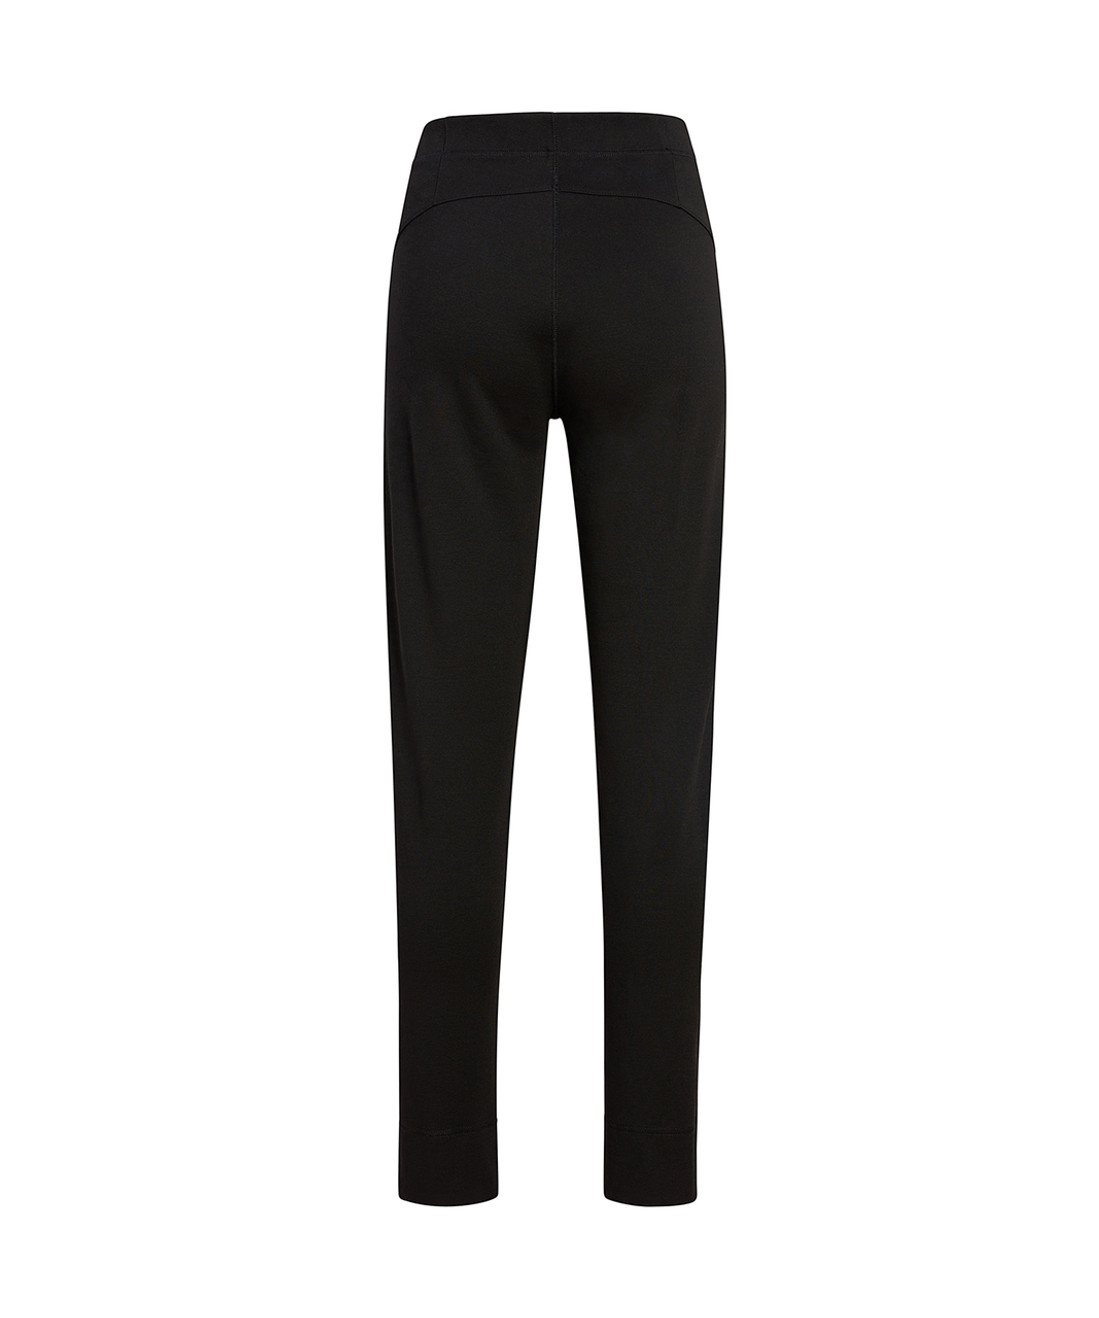 Women's Back Up Beauty Ponte Legging